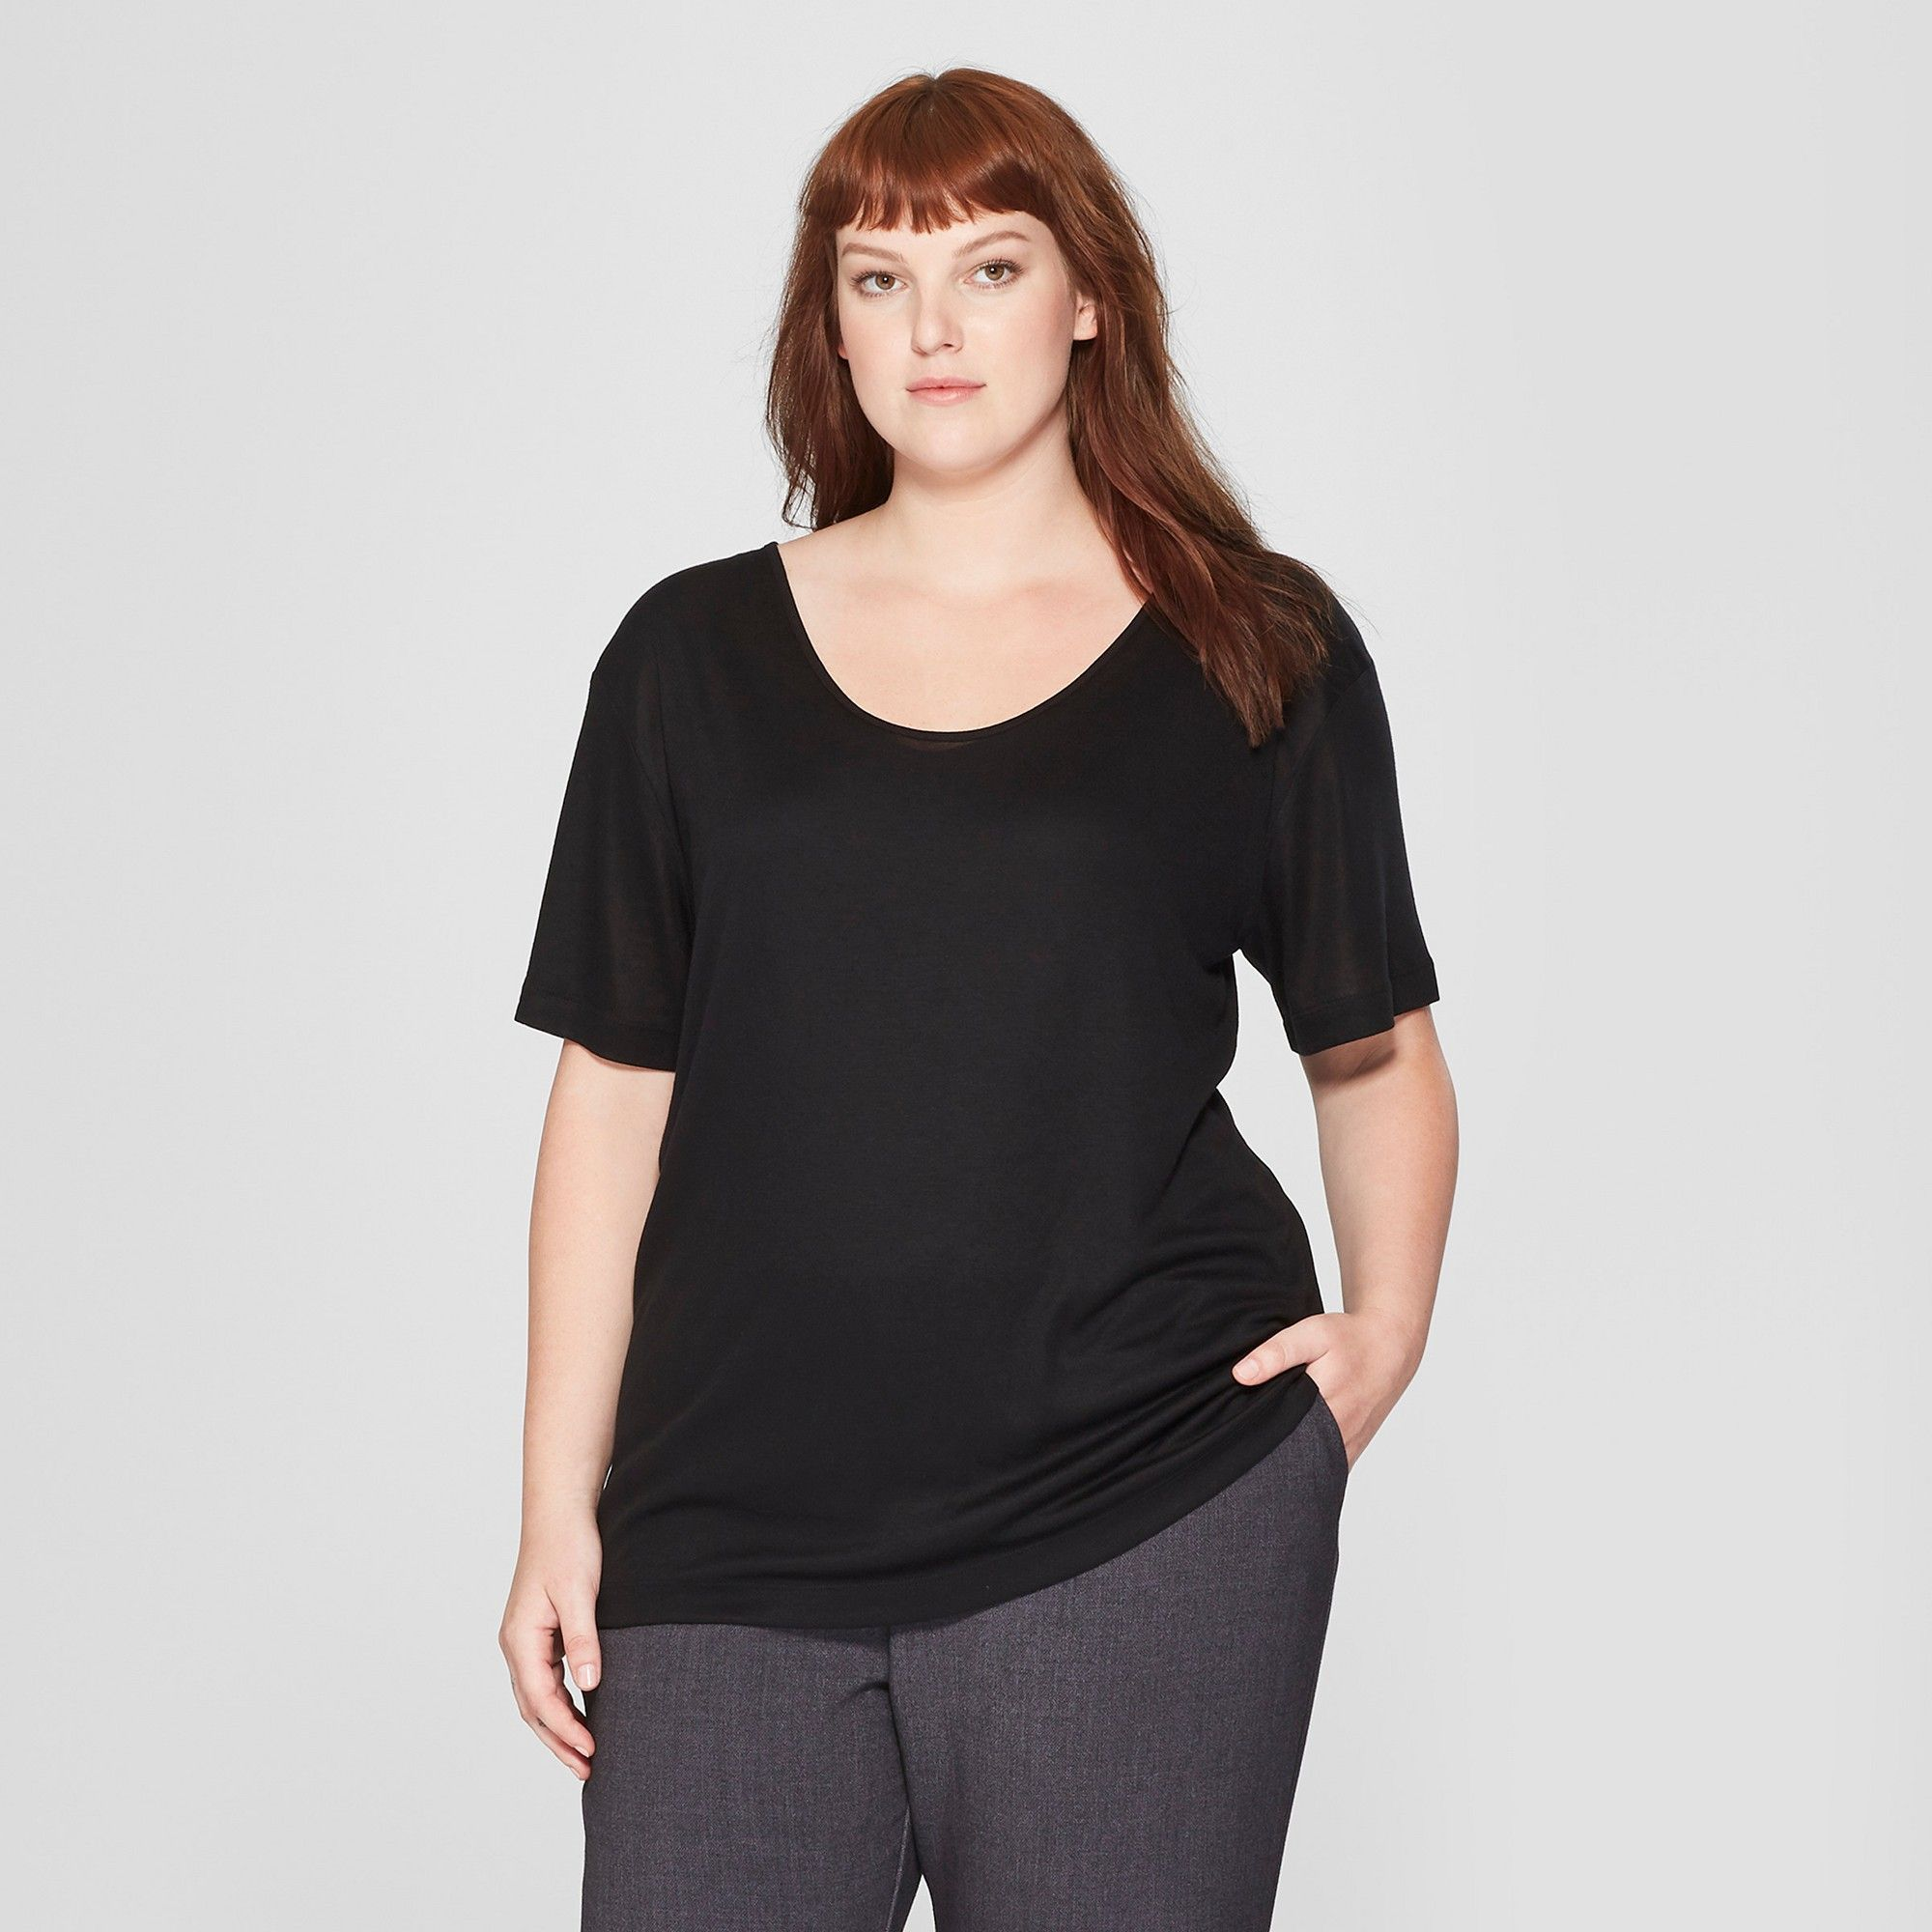 d1a16be4229 Women s Plus Size Short Sleeve Drapey T-Shirt - Prologue Black 1X ...